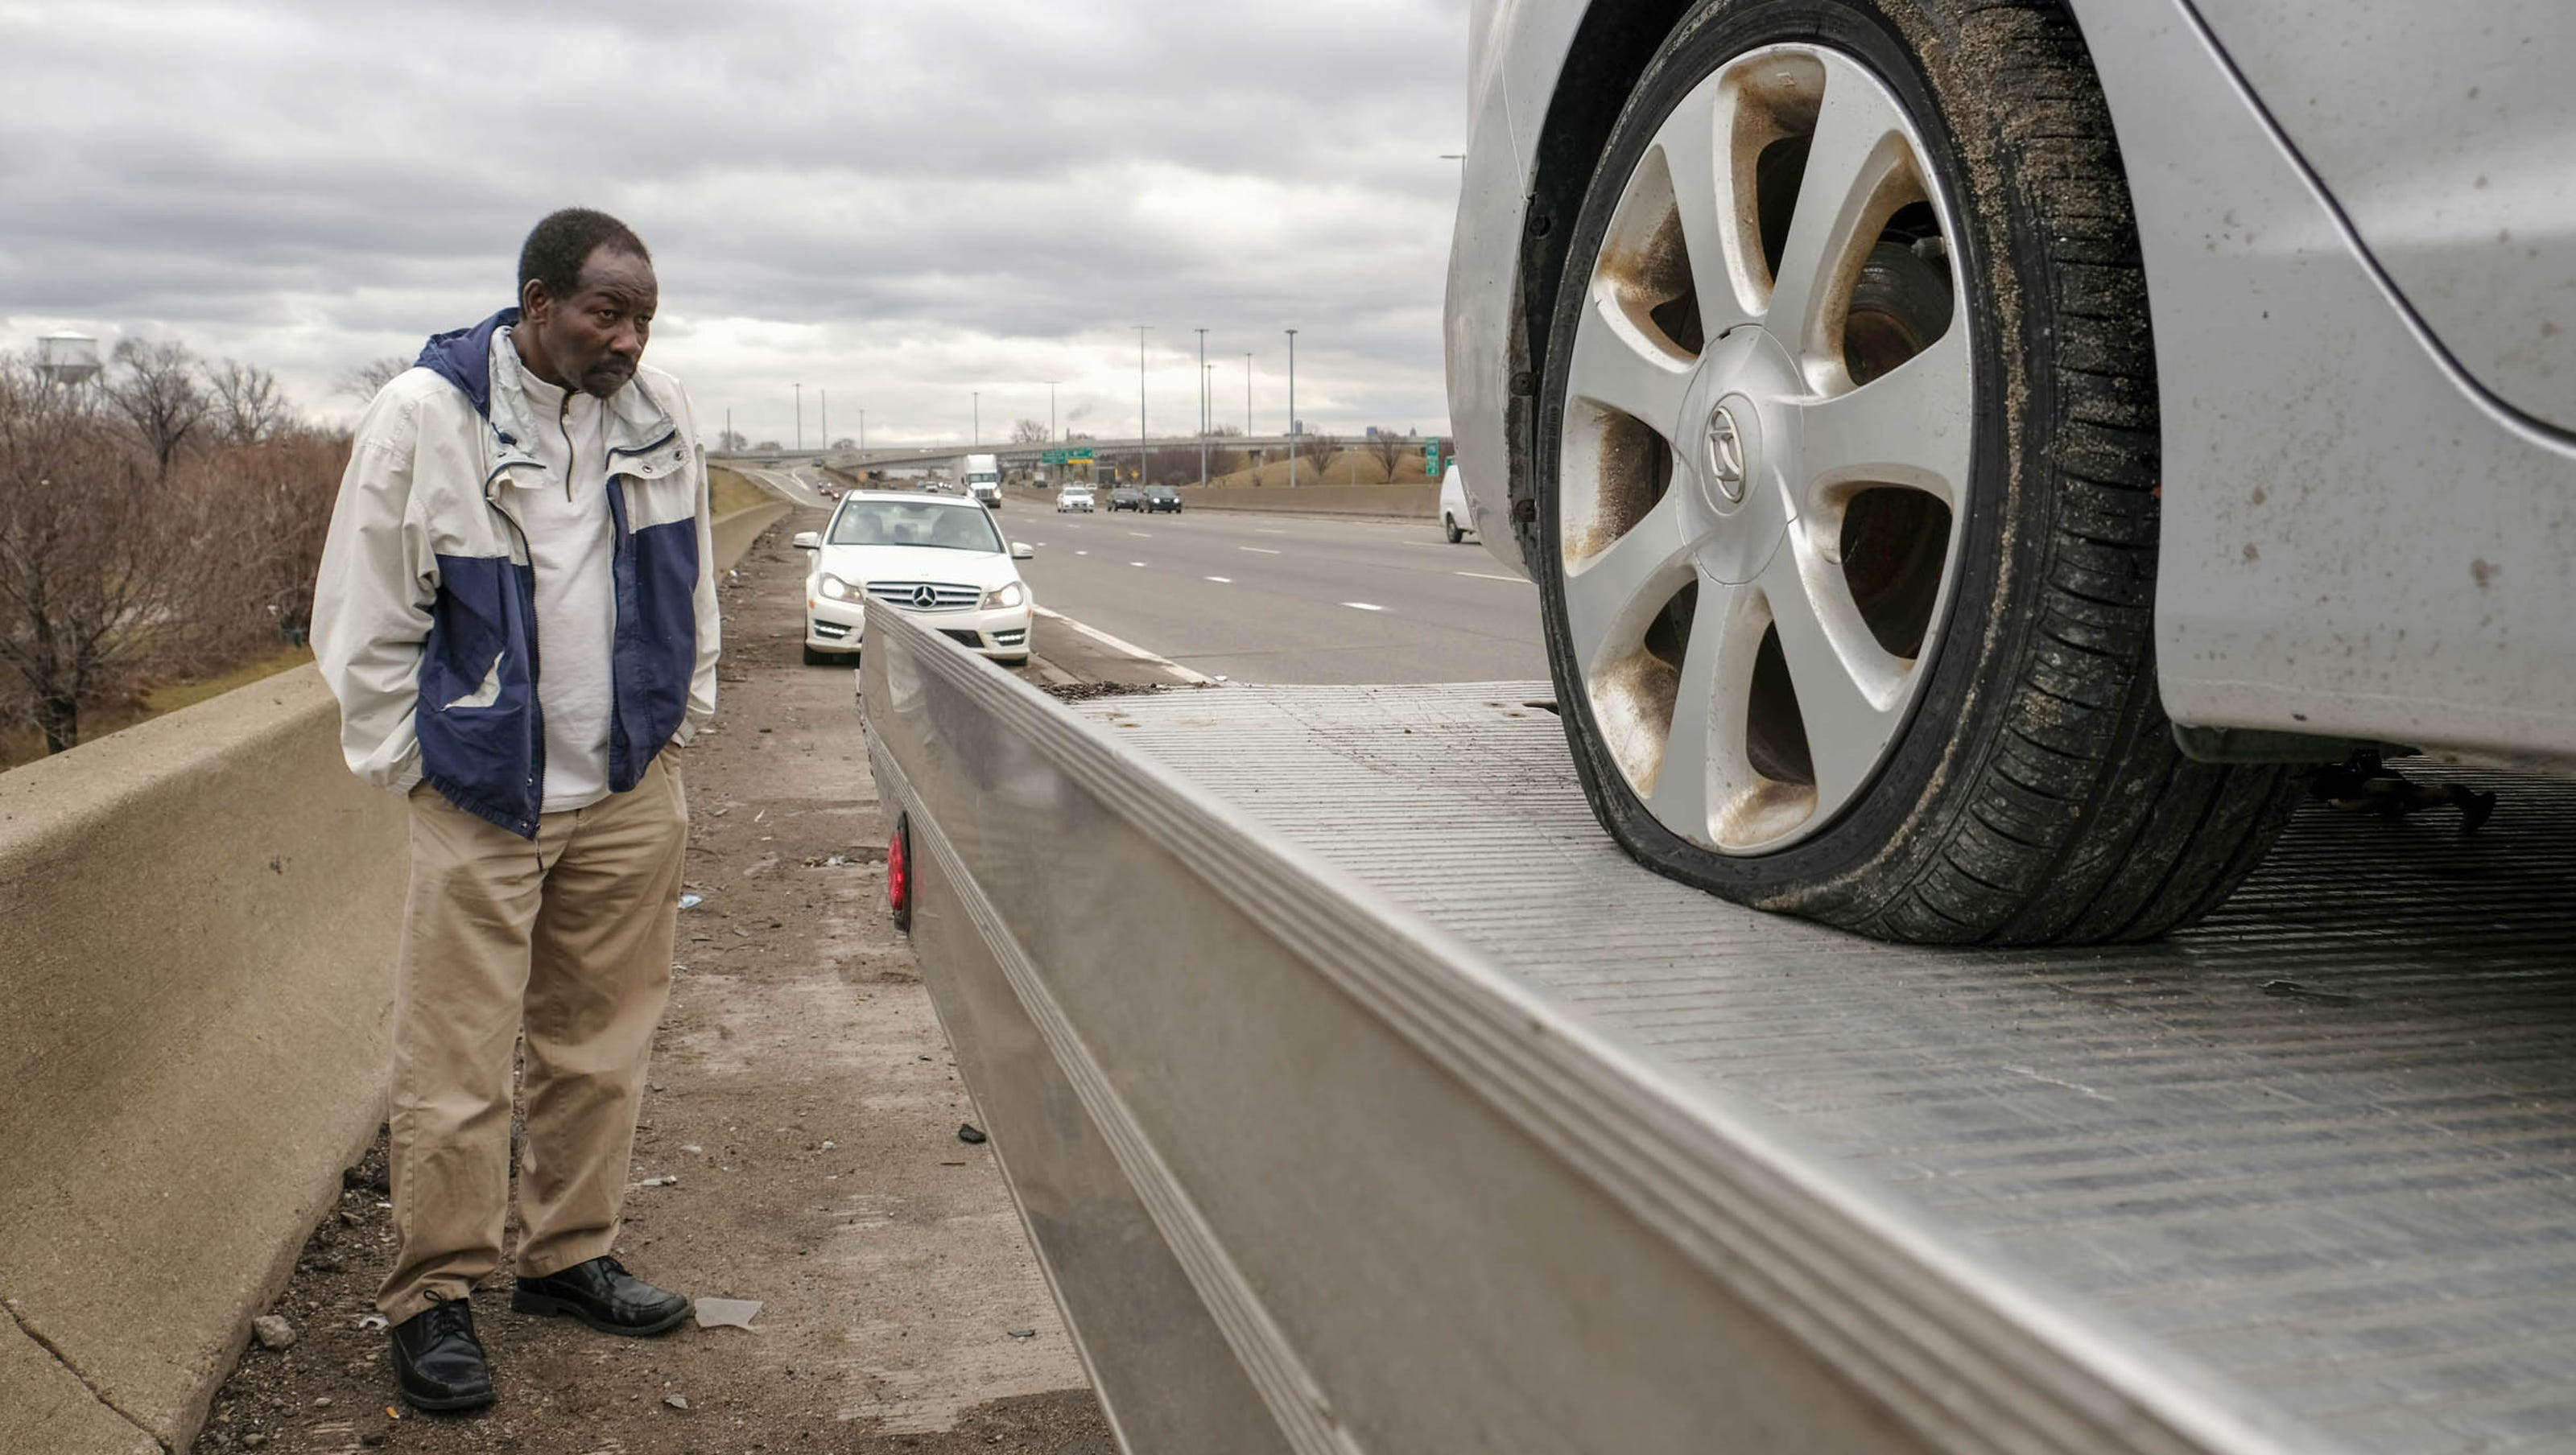 Pothole Damage Choosing The Right Tire And Wheel Can Protect You